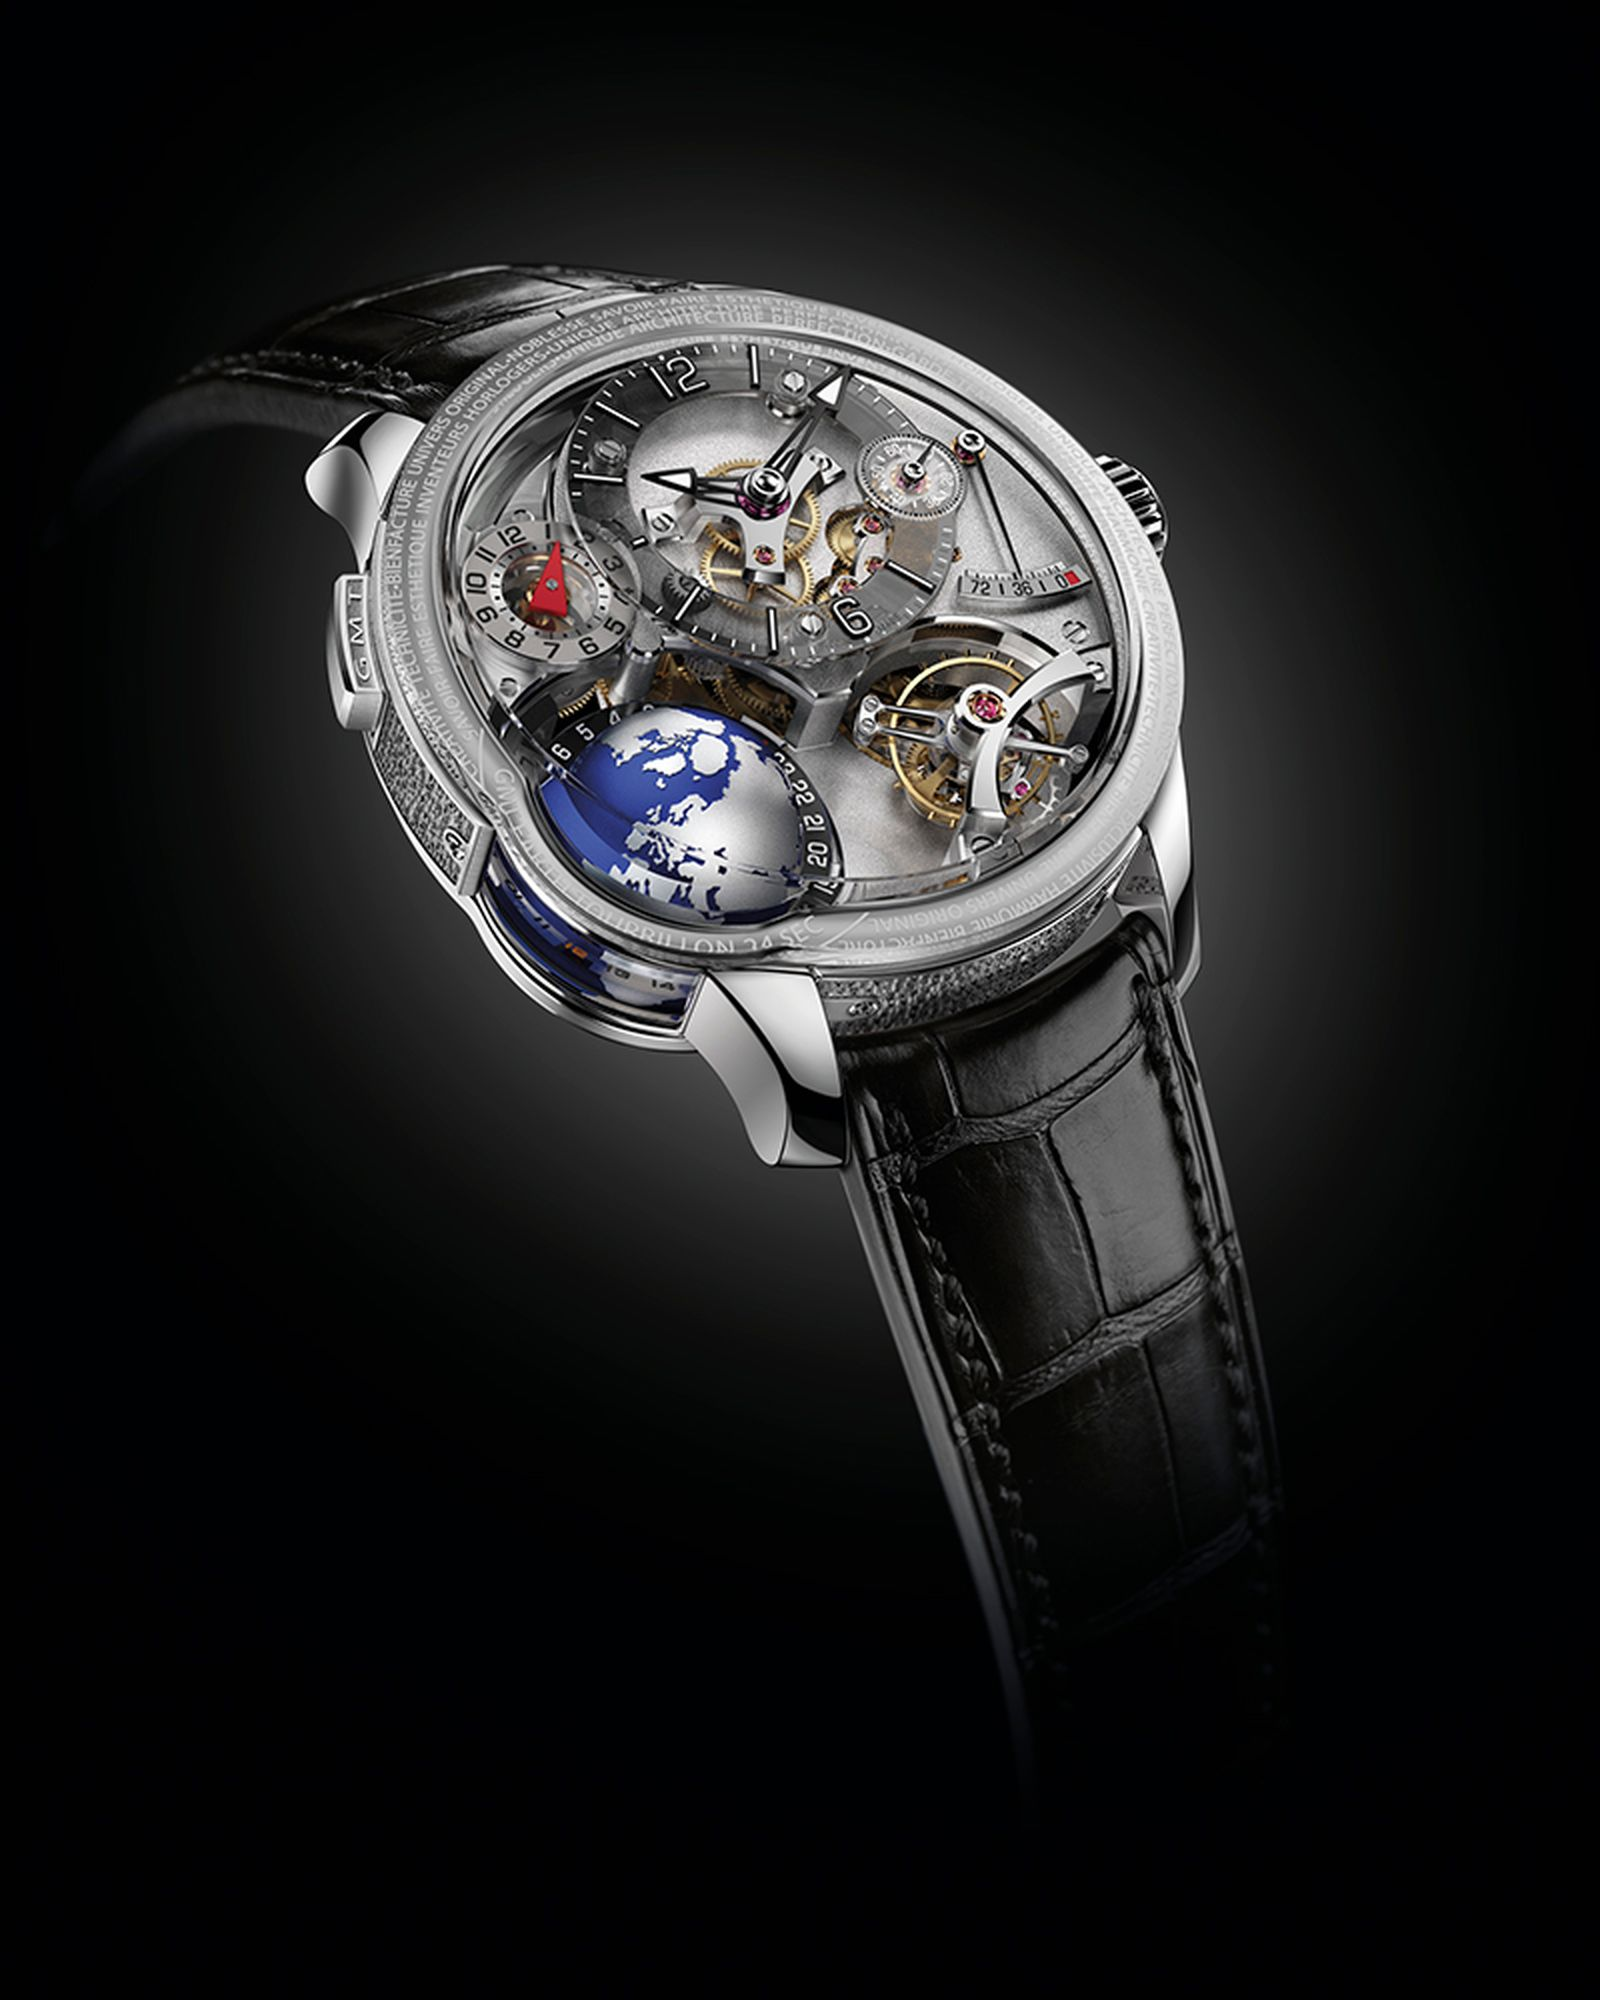 Greubel Forsey GMT Earth in white gold with rotating globe and universal time indication, as well as tourbillon. Limited edition of 33 pieces. Approximately $610,000.